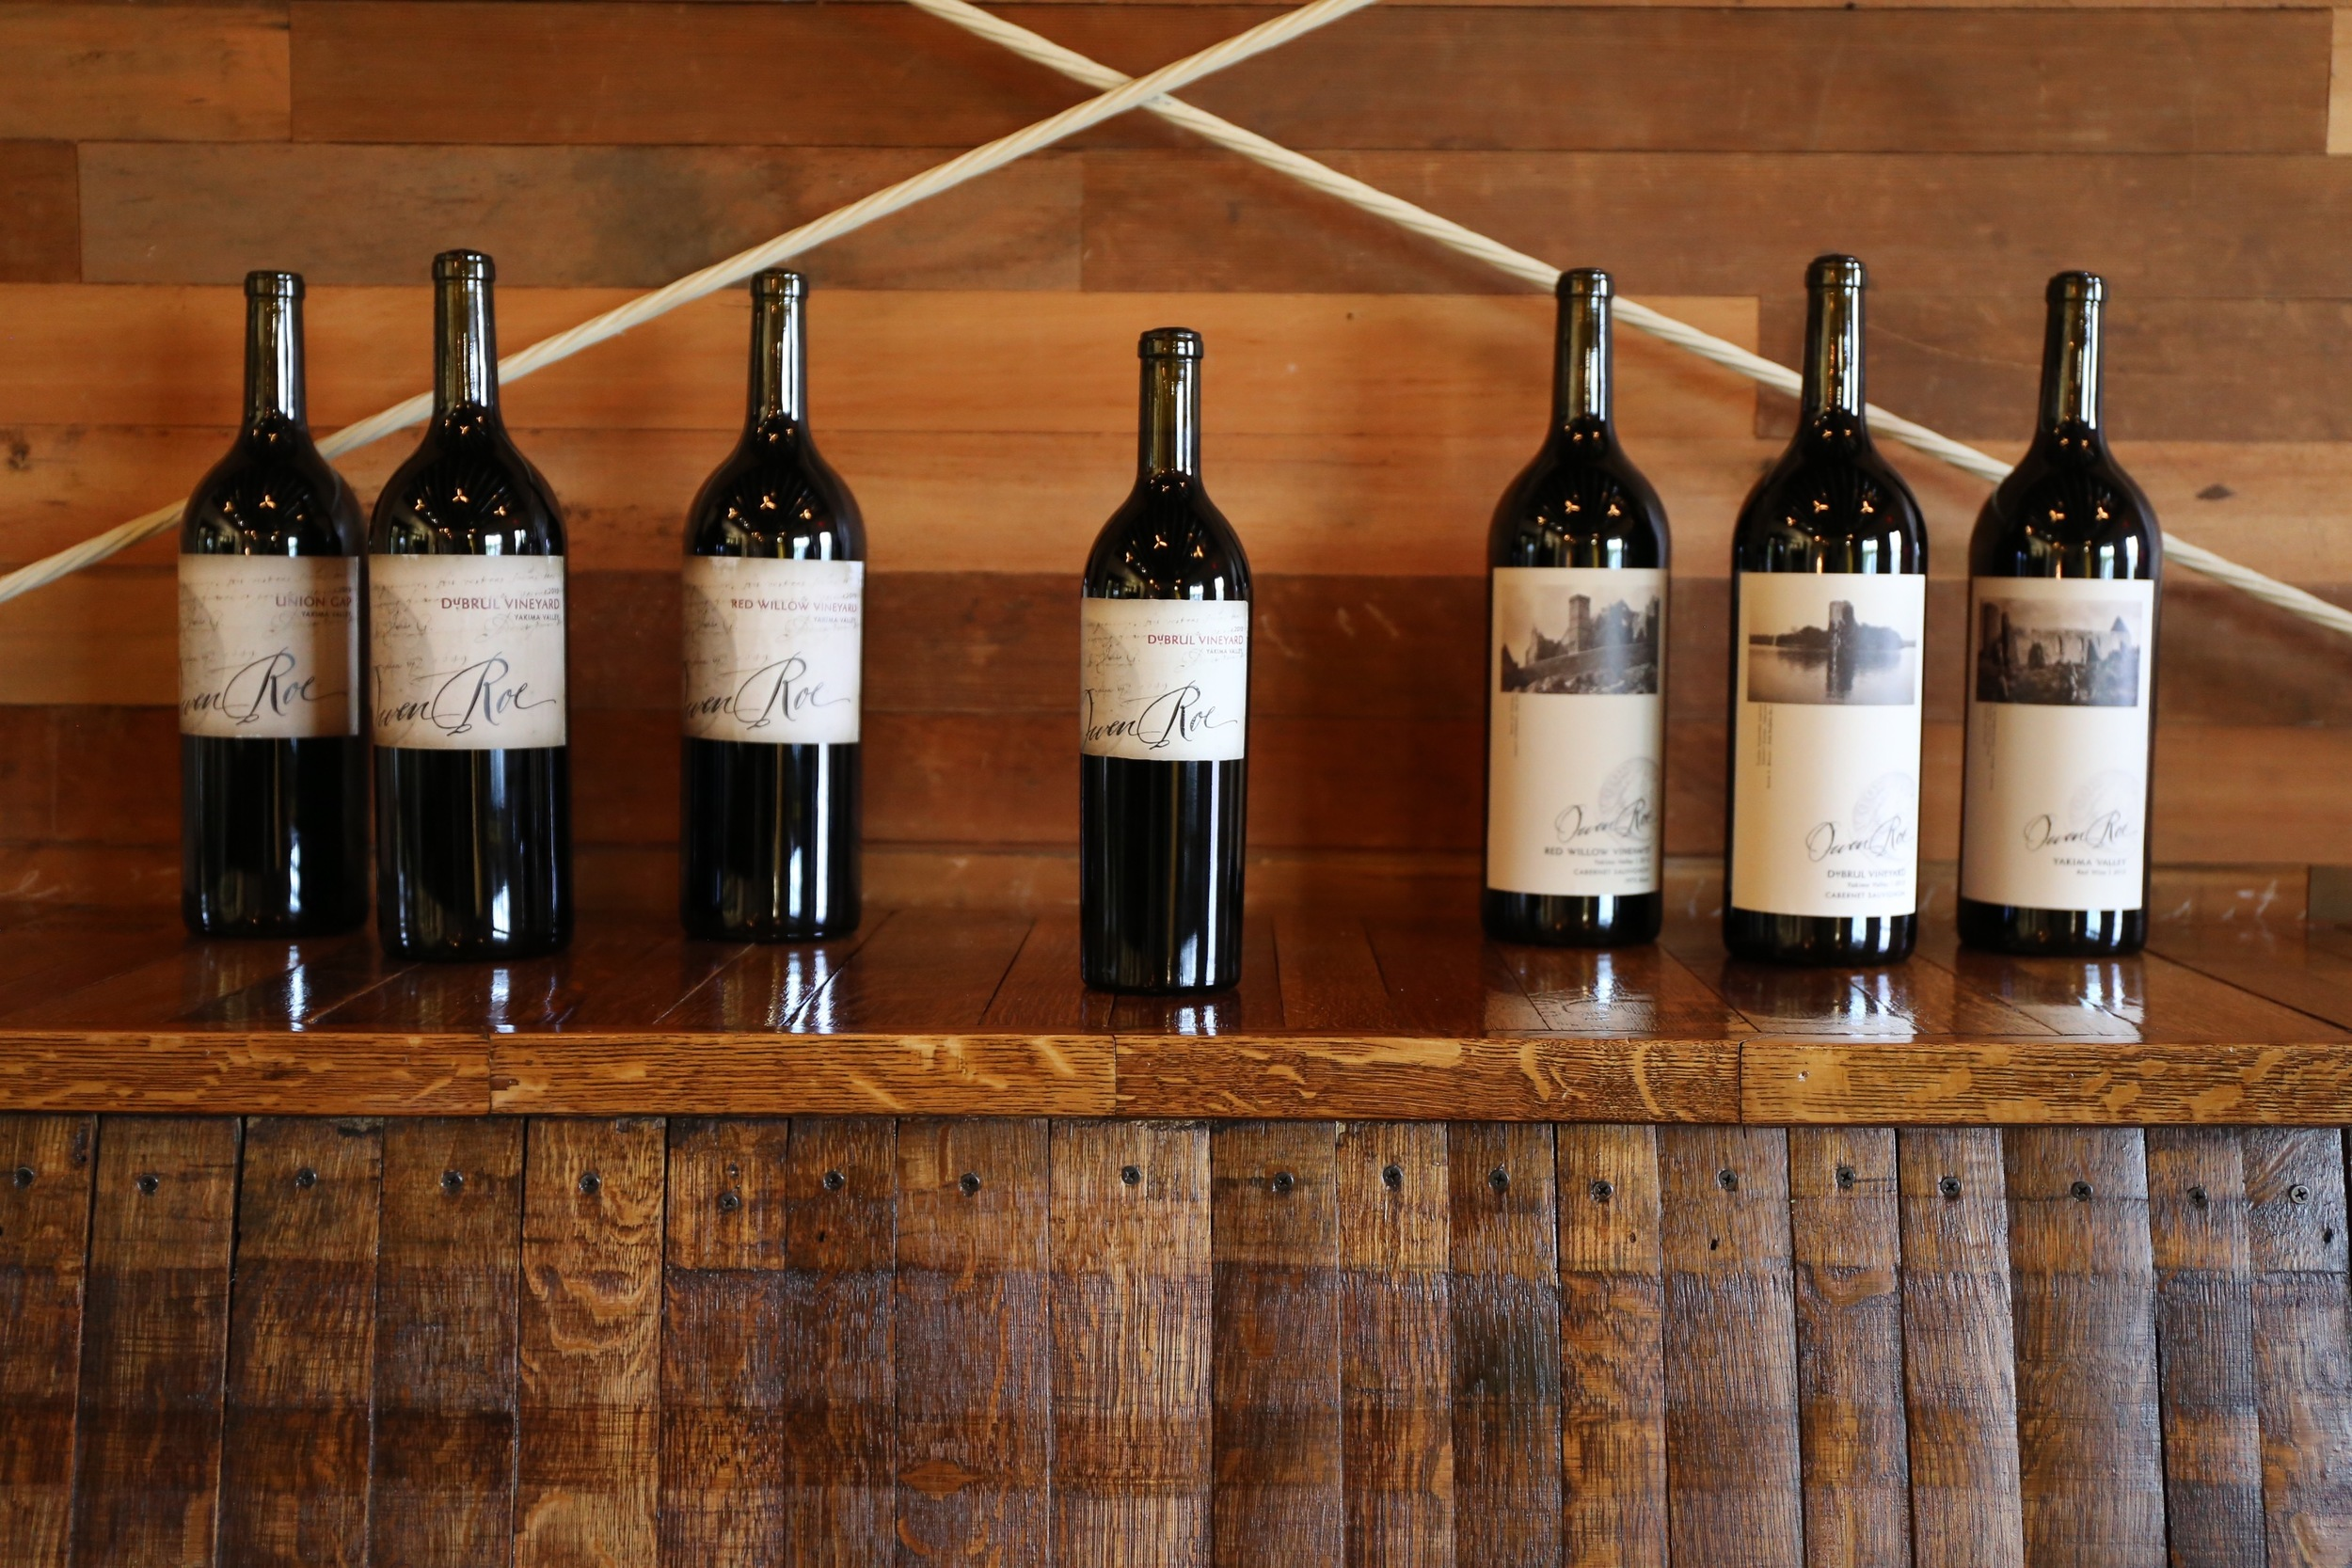 Owen Roe wines, featuring their three core vineyards--Red Willow, Union Gap, and DuBrul.jpg